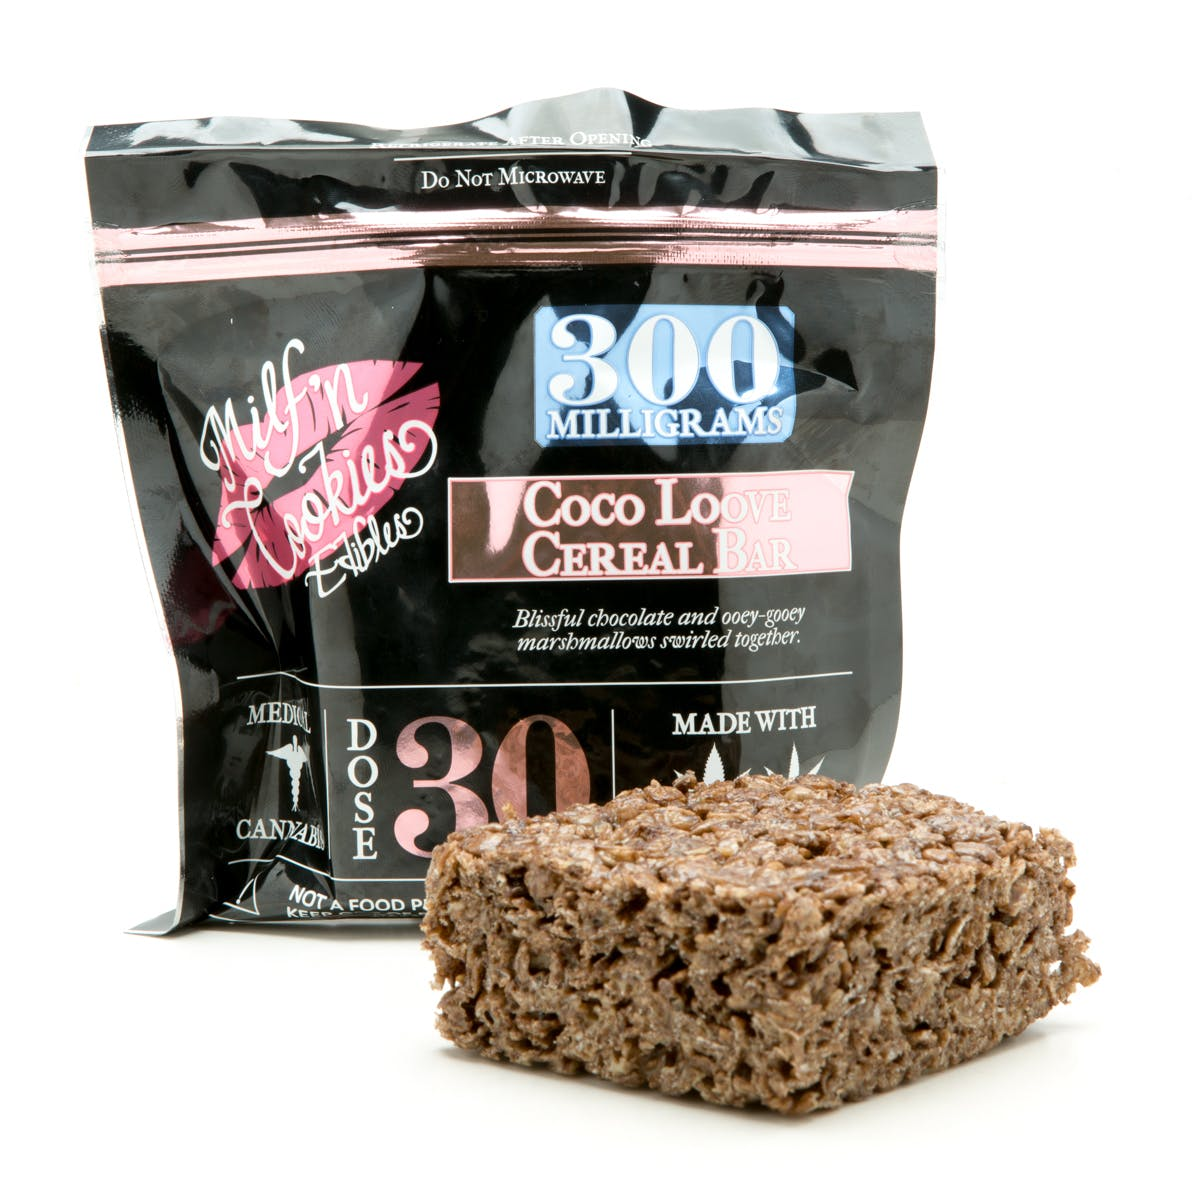 marijuana-dispensaries-van-nuys-medical-alliance-in-van-nuys-coco-loove-cereal-bar-300mg